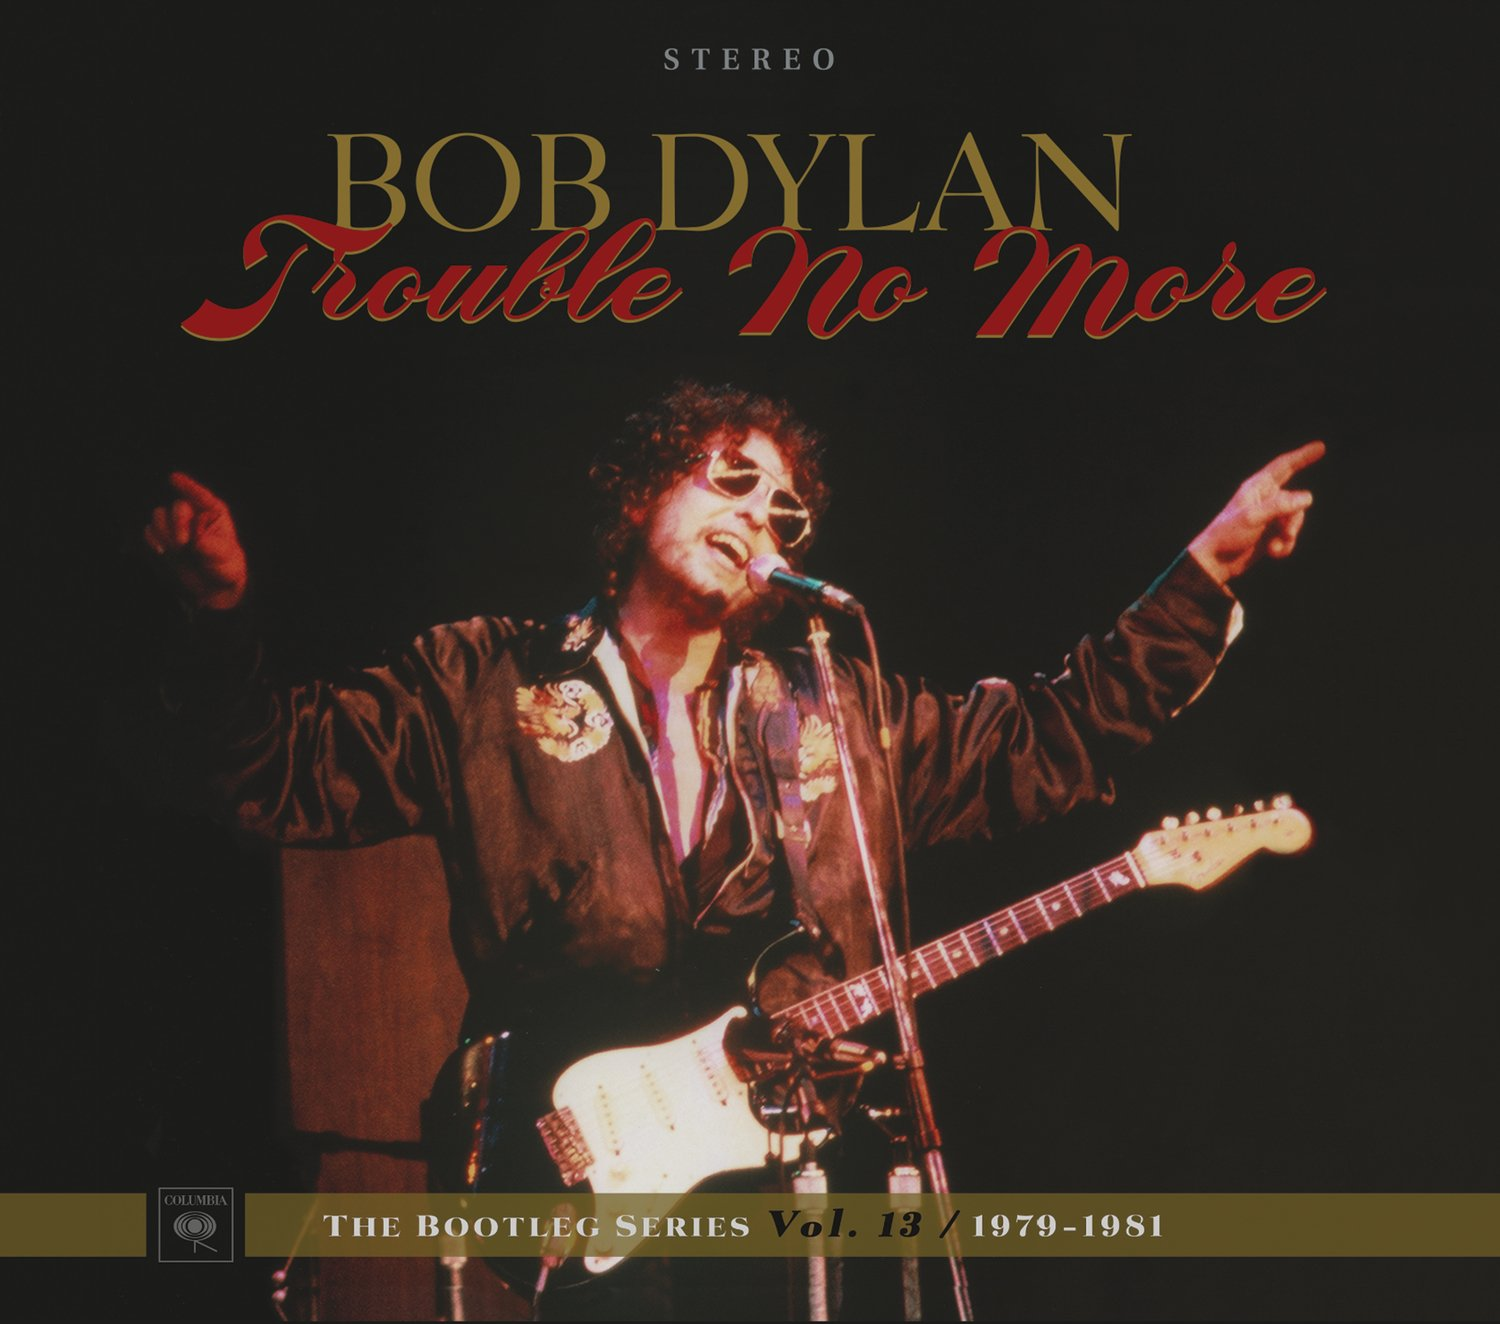 BOB DYLAN - TROUBLE NO MORE: THE BOOTLEG SERIES VOL. 13 / 1979-1